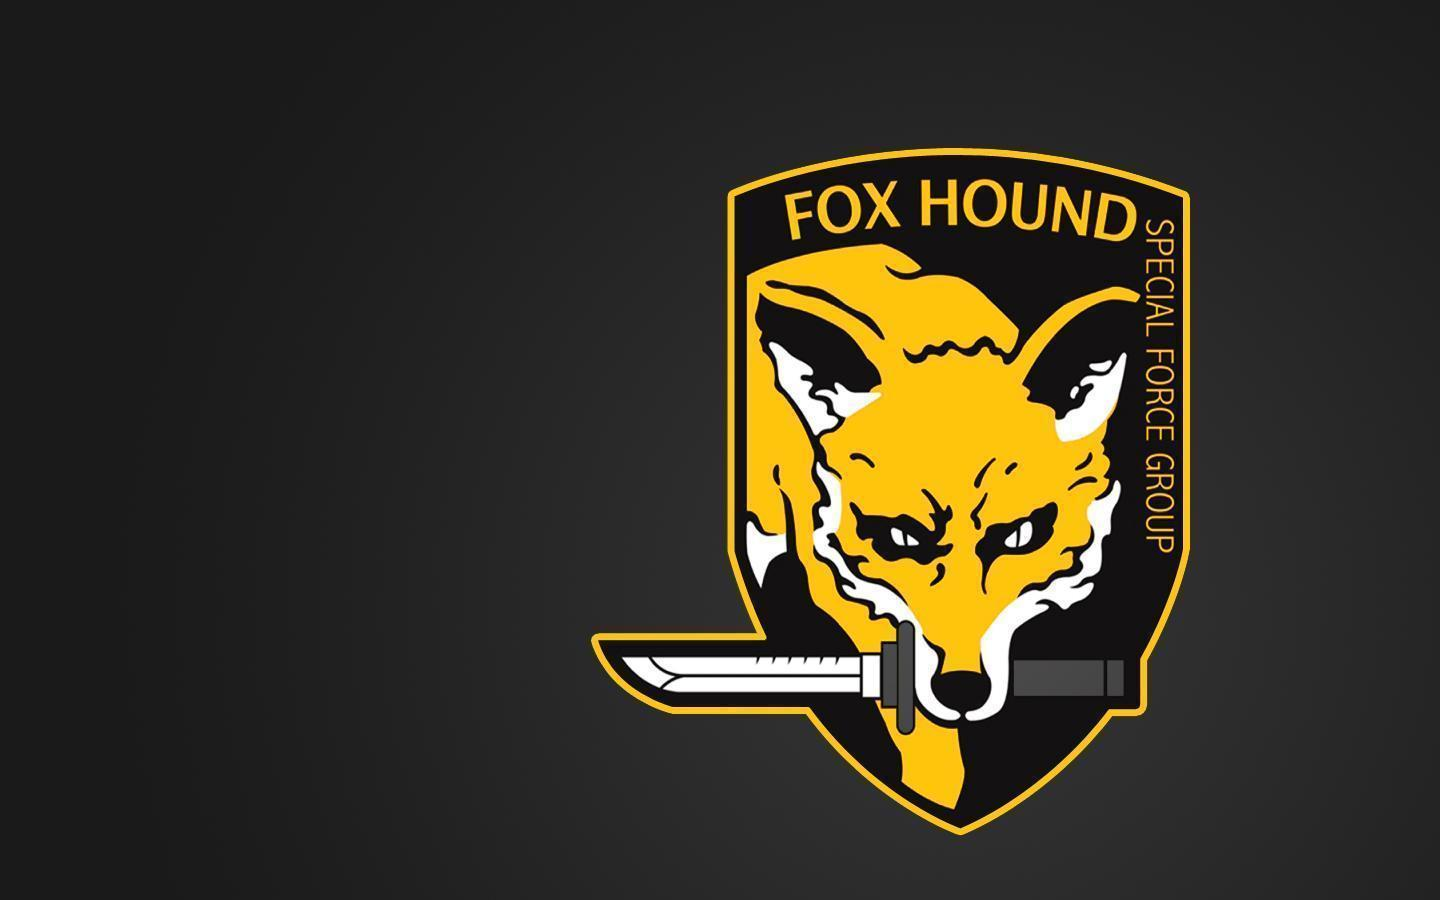 Foxhound Logo Wallpaper Hd - Viewing Gallery